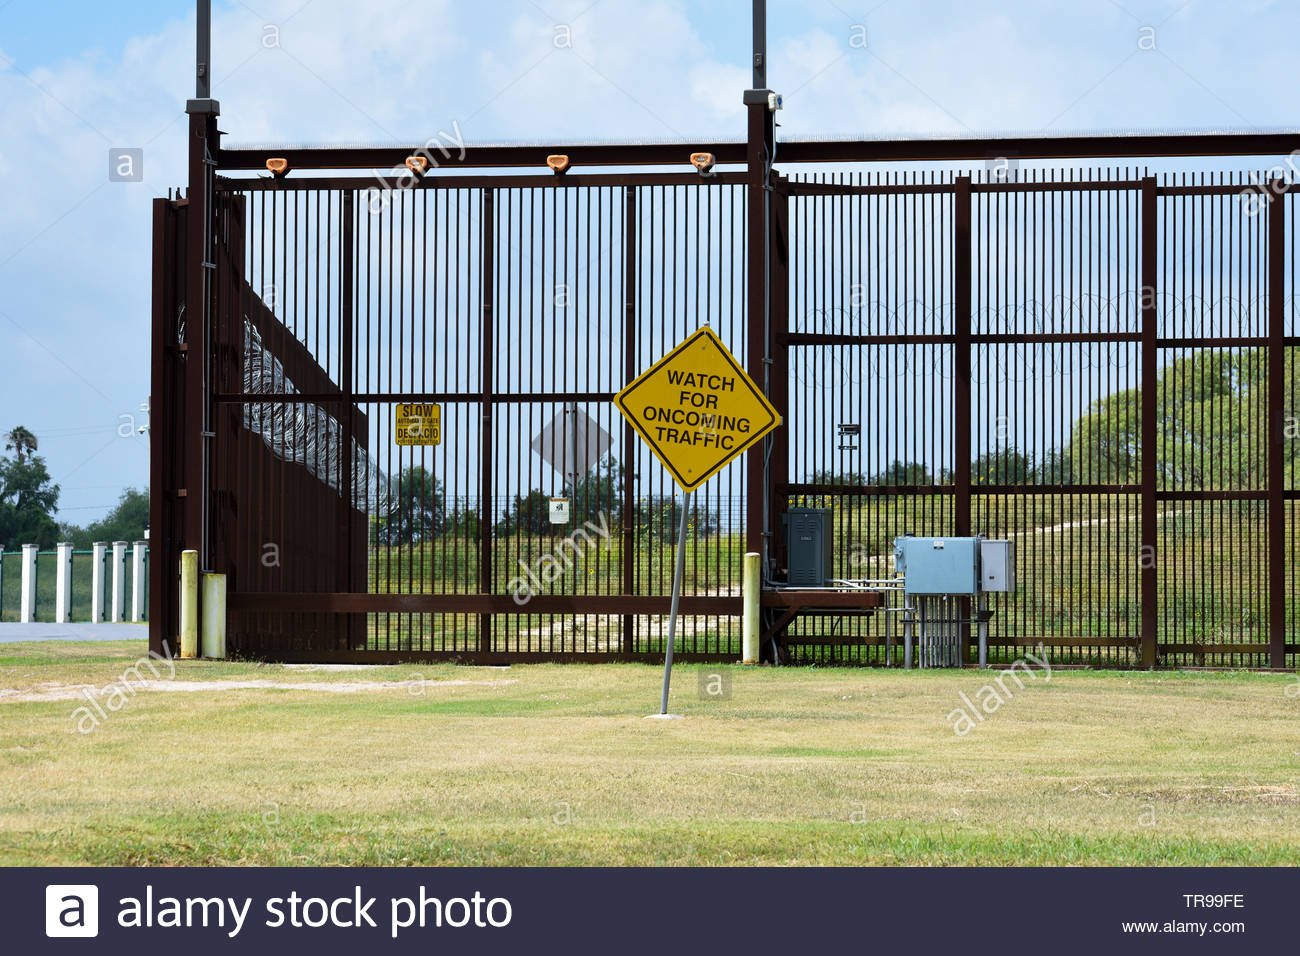 Brownsville Border Fence. Border Fence. United States - Mexico Border Fence in Brownsville, Texas. The Border Wall. Fence on Mexican Border in Texas. Stock Photo